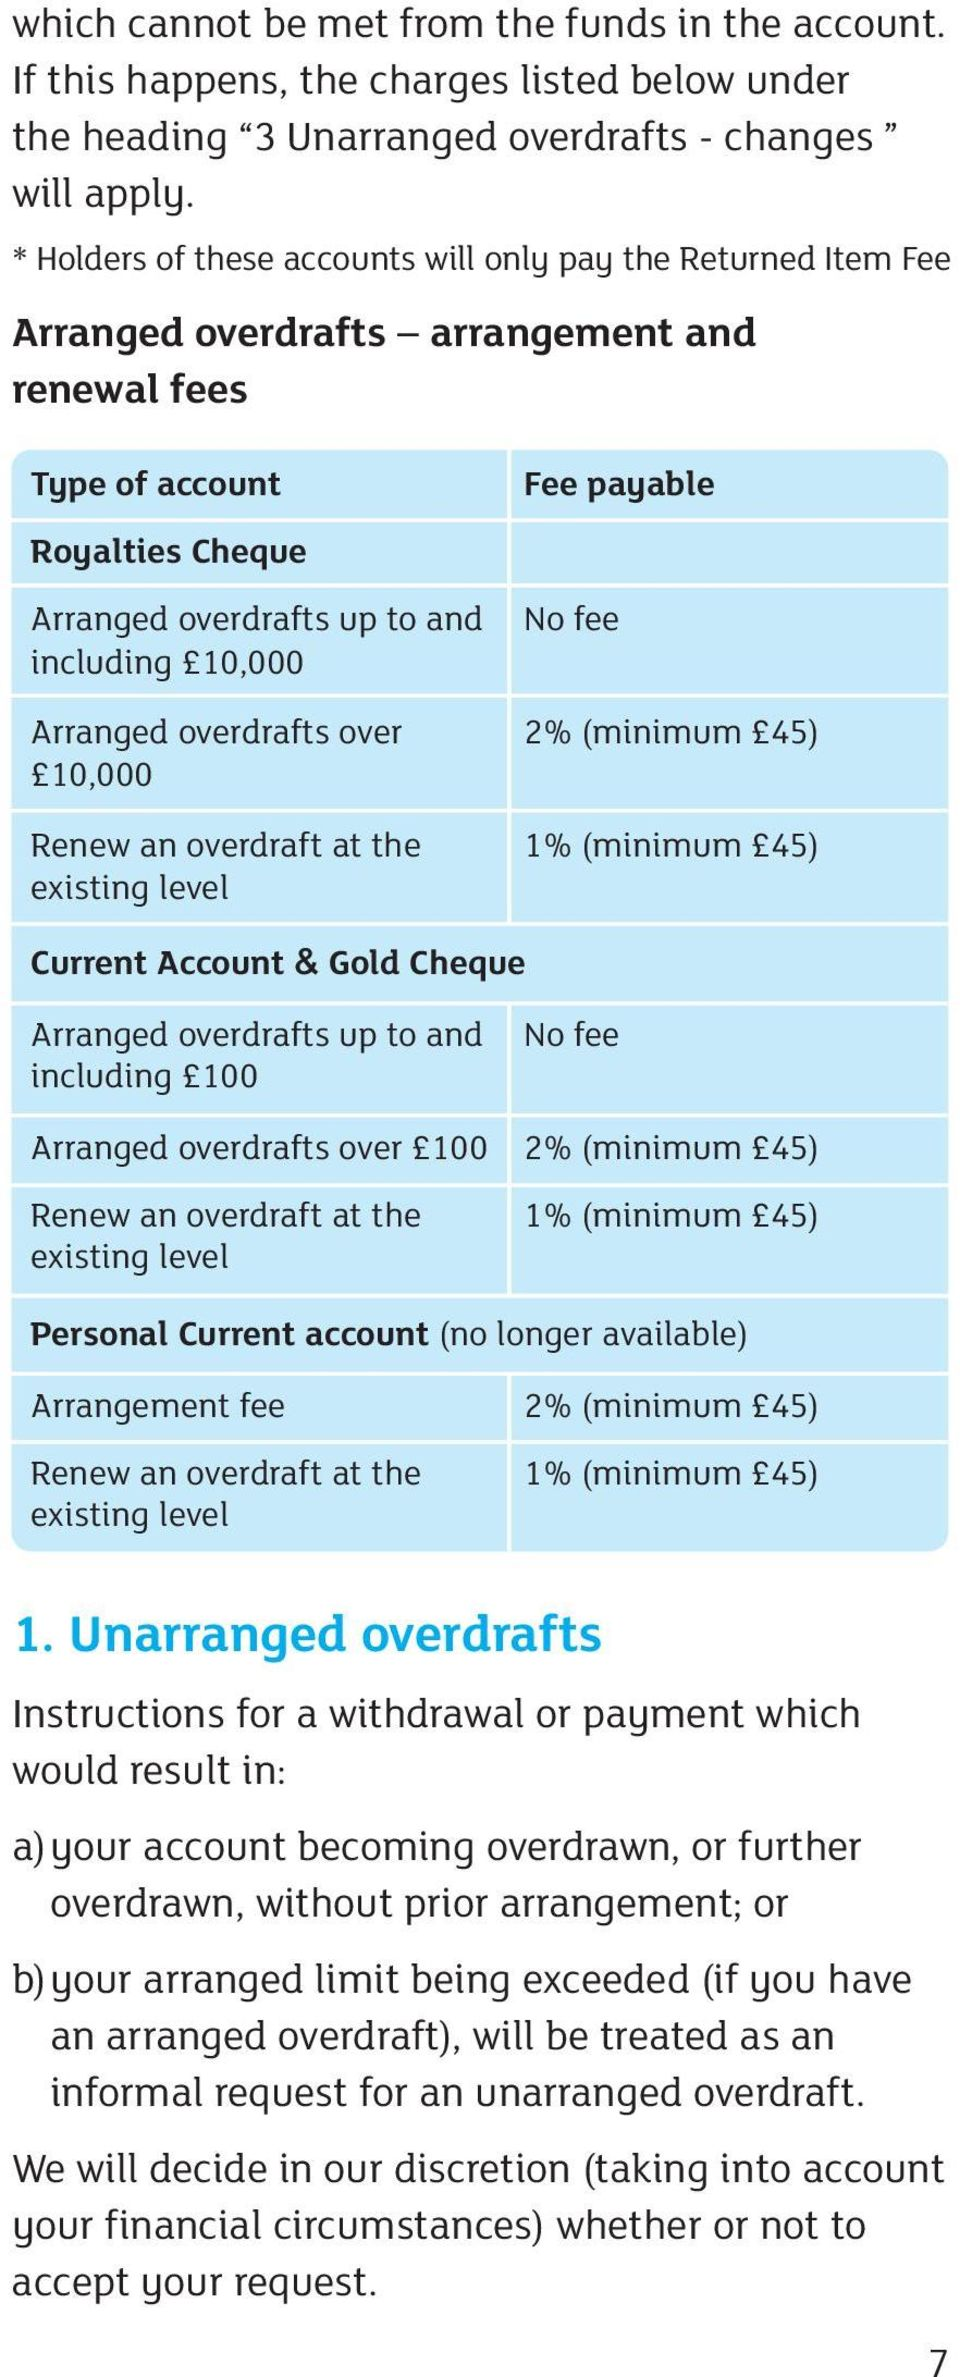 Arranged overdrafts over 10,000 Renew an overdraft at the existing level Fee payable No fee 2% (minimum 45) 1% (minimum 45) Current Account & Gold Cheque Arranged overdrafts up to and including 100